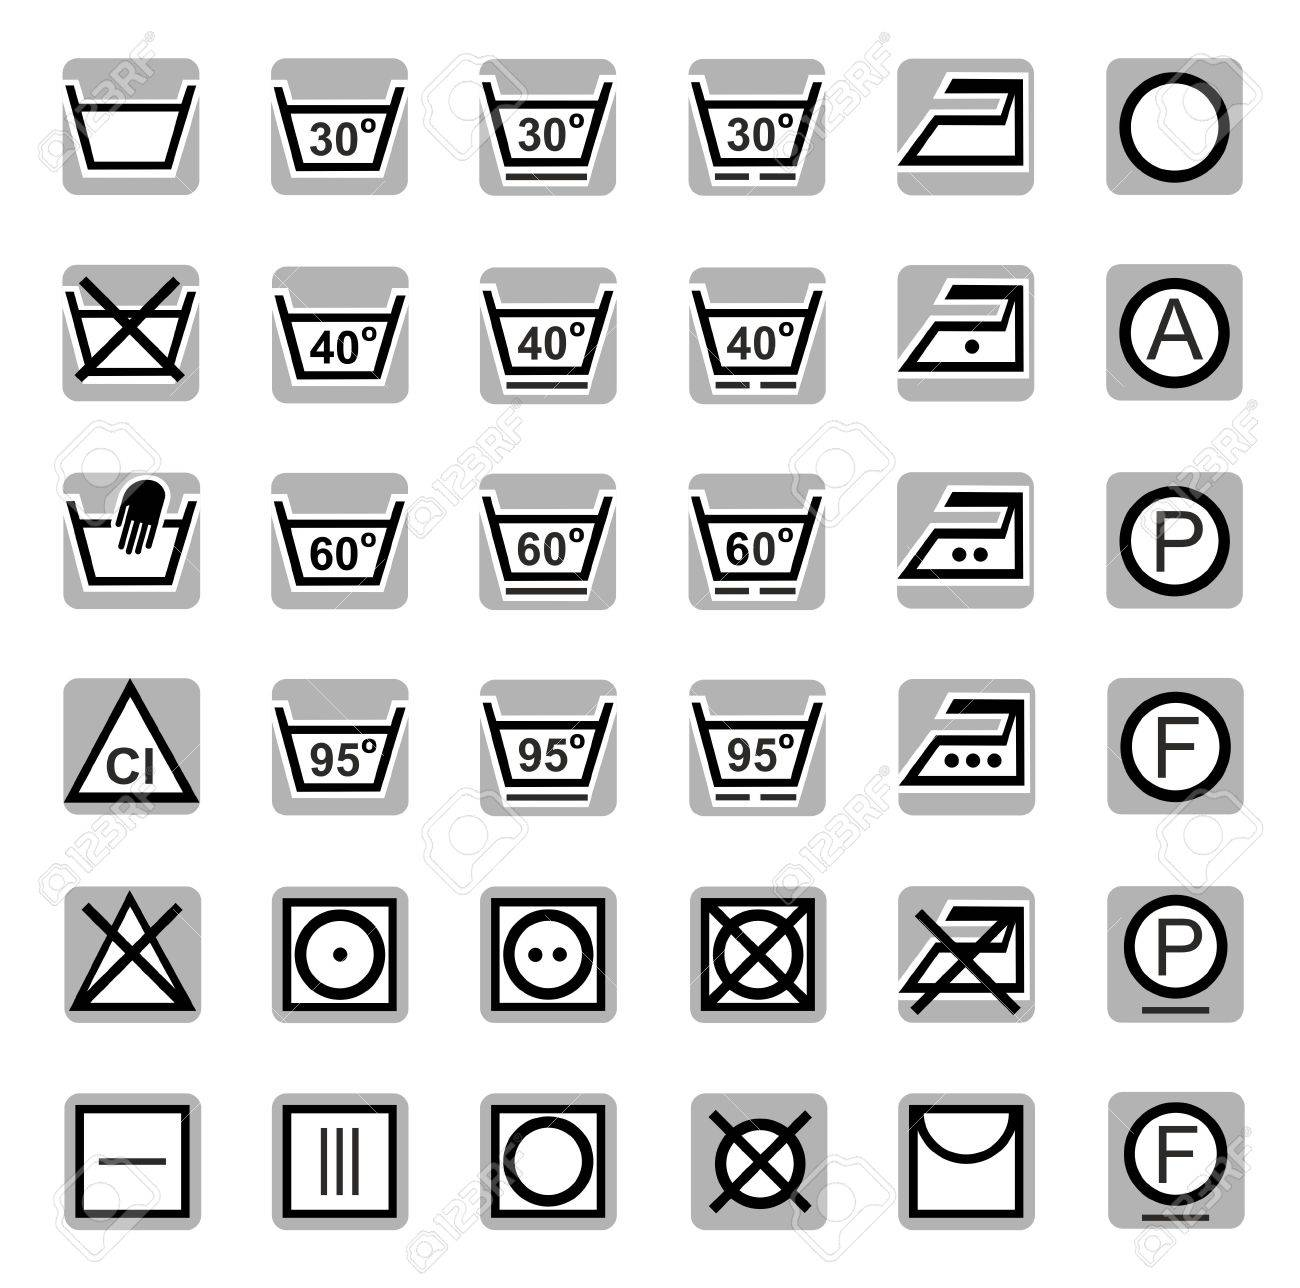 Icons washing bleaching drying ironing dry cleaning gray black icons washing bleaching drying ironing dry cleaning gray black biocorpaavc Image collections